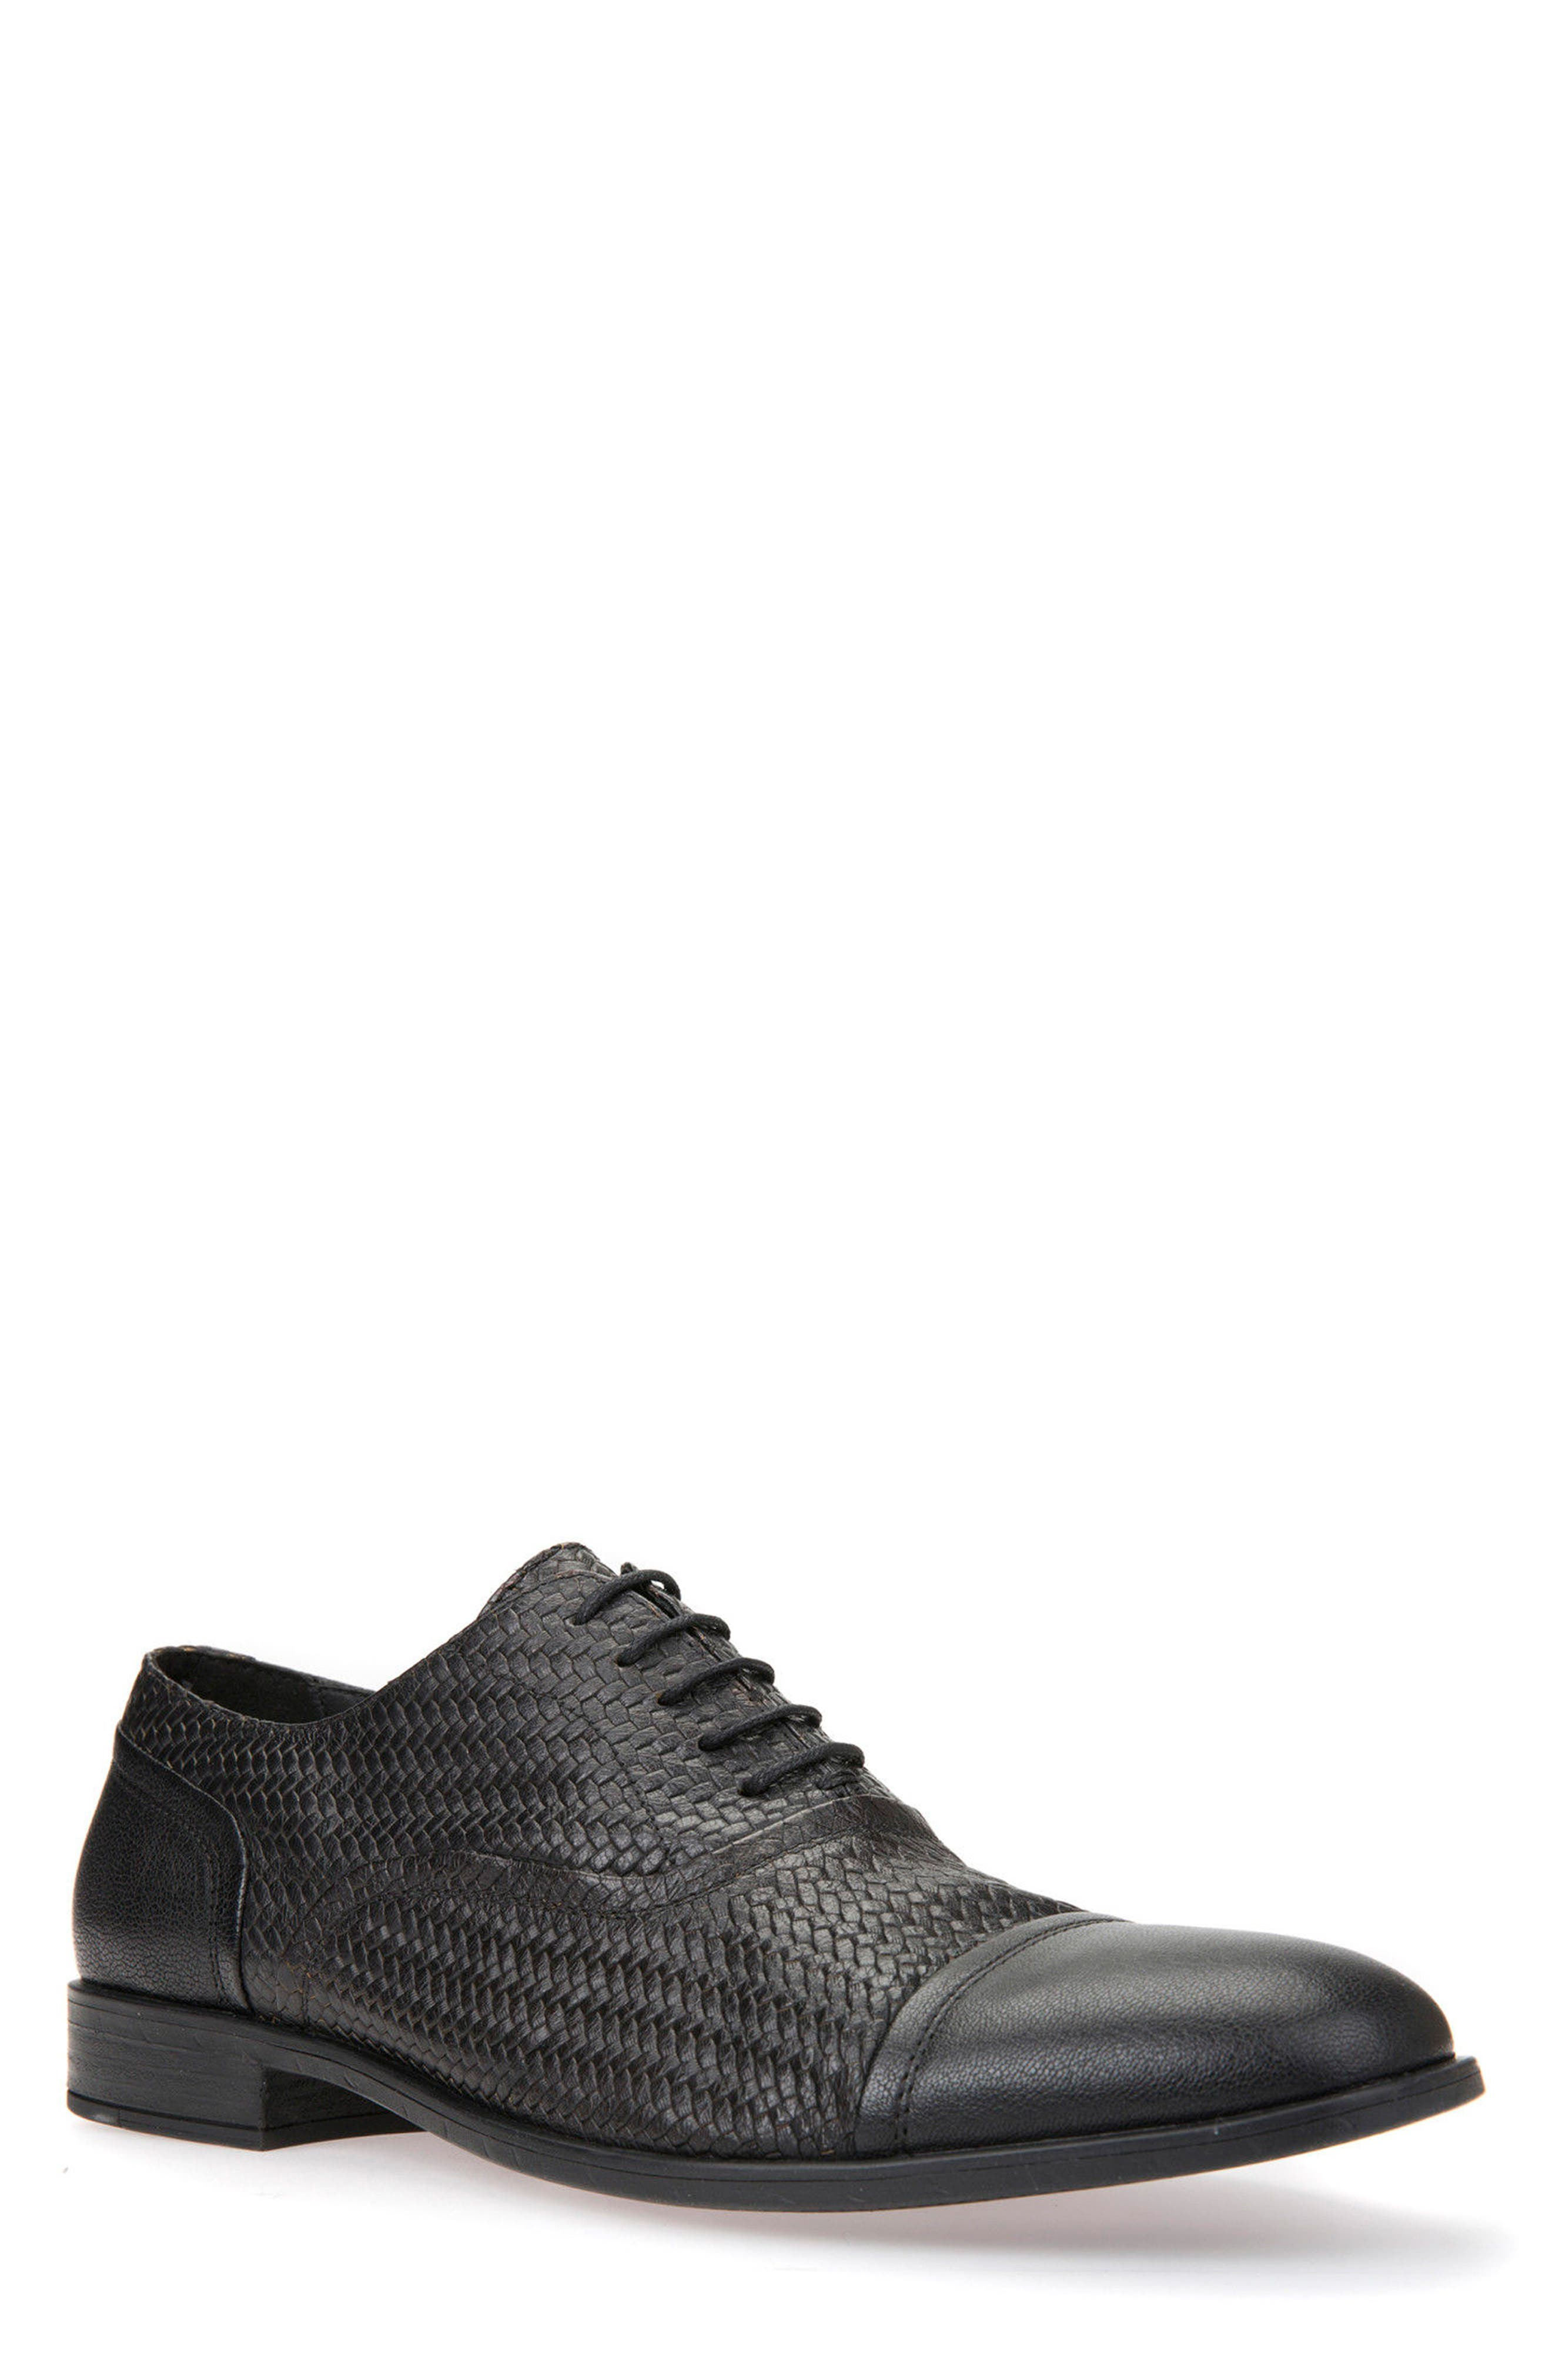 Bryceton Textured Cap Toe Oxford,                             Main thumbnail 1, color,                             BLACK LEATHER